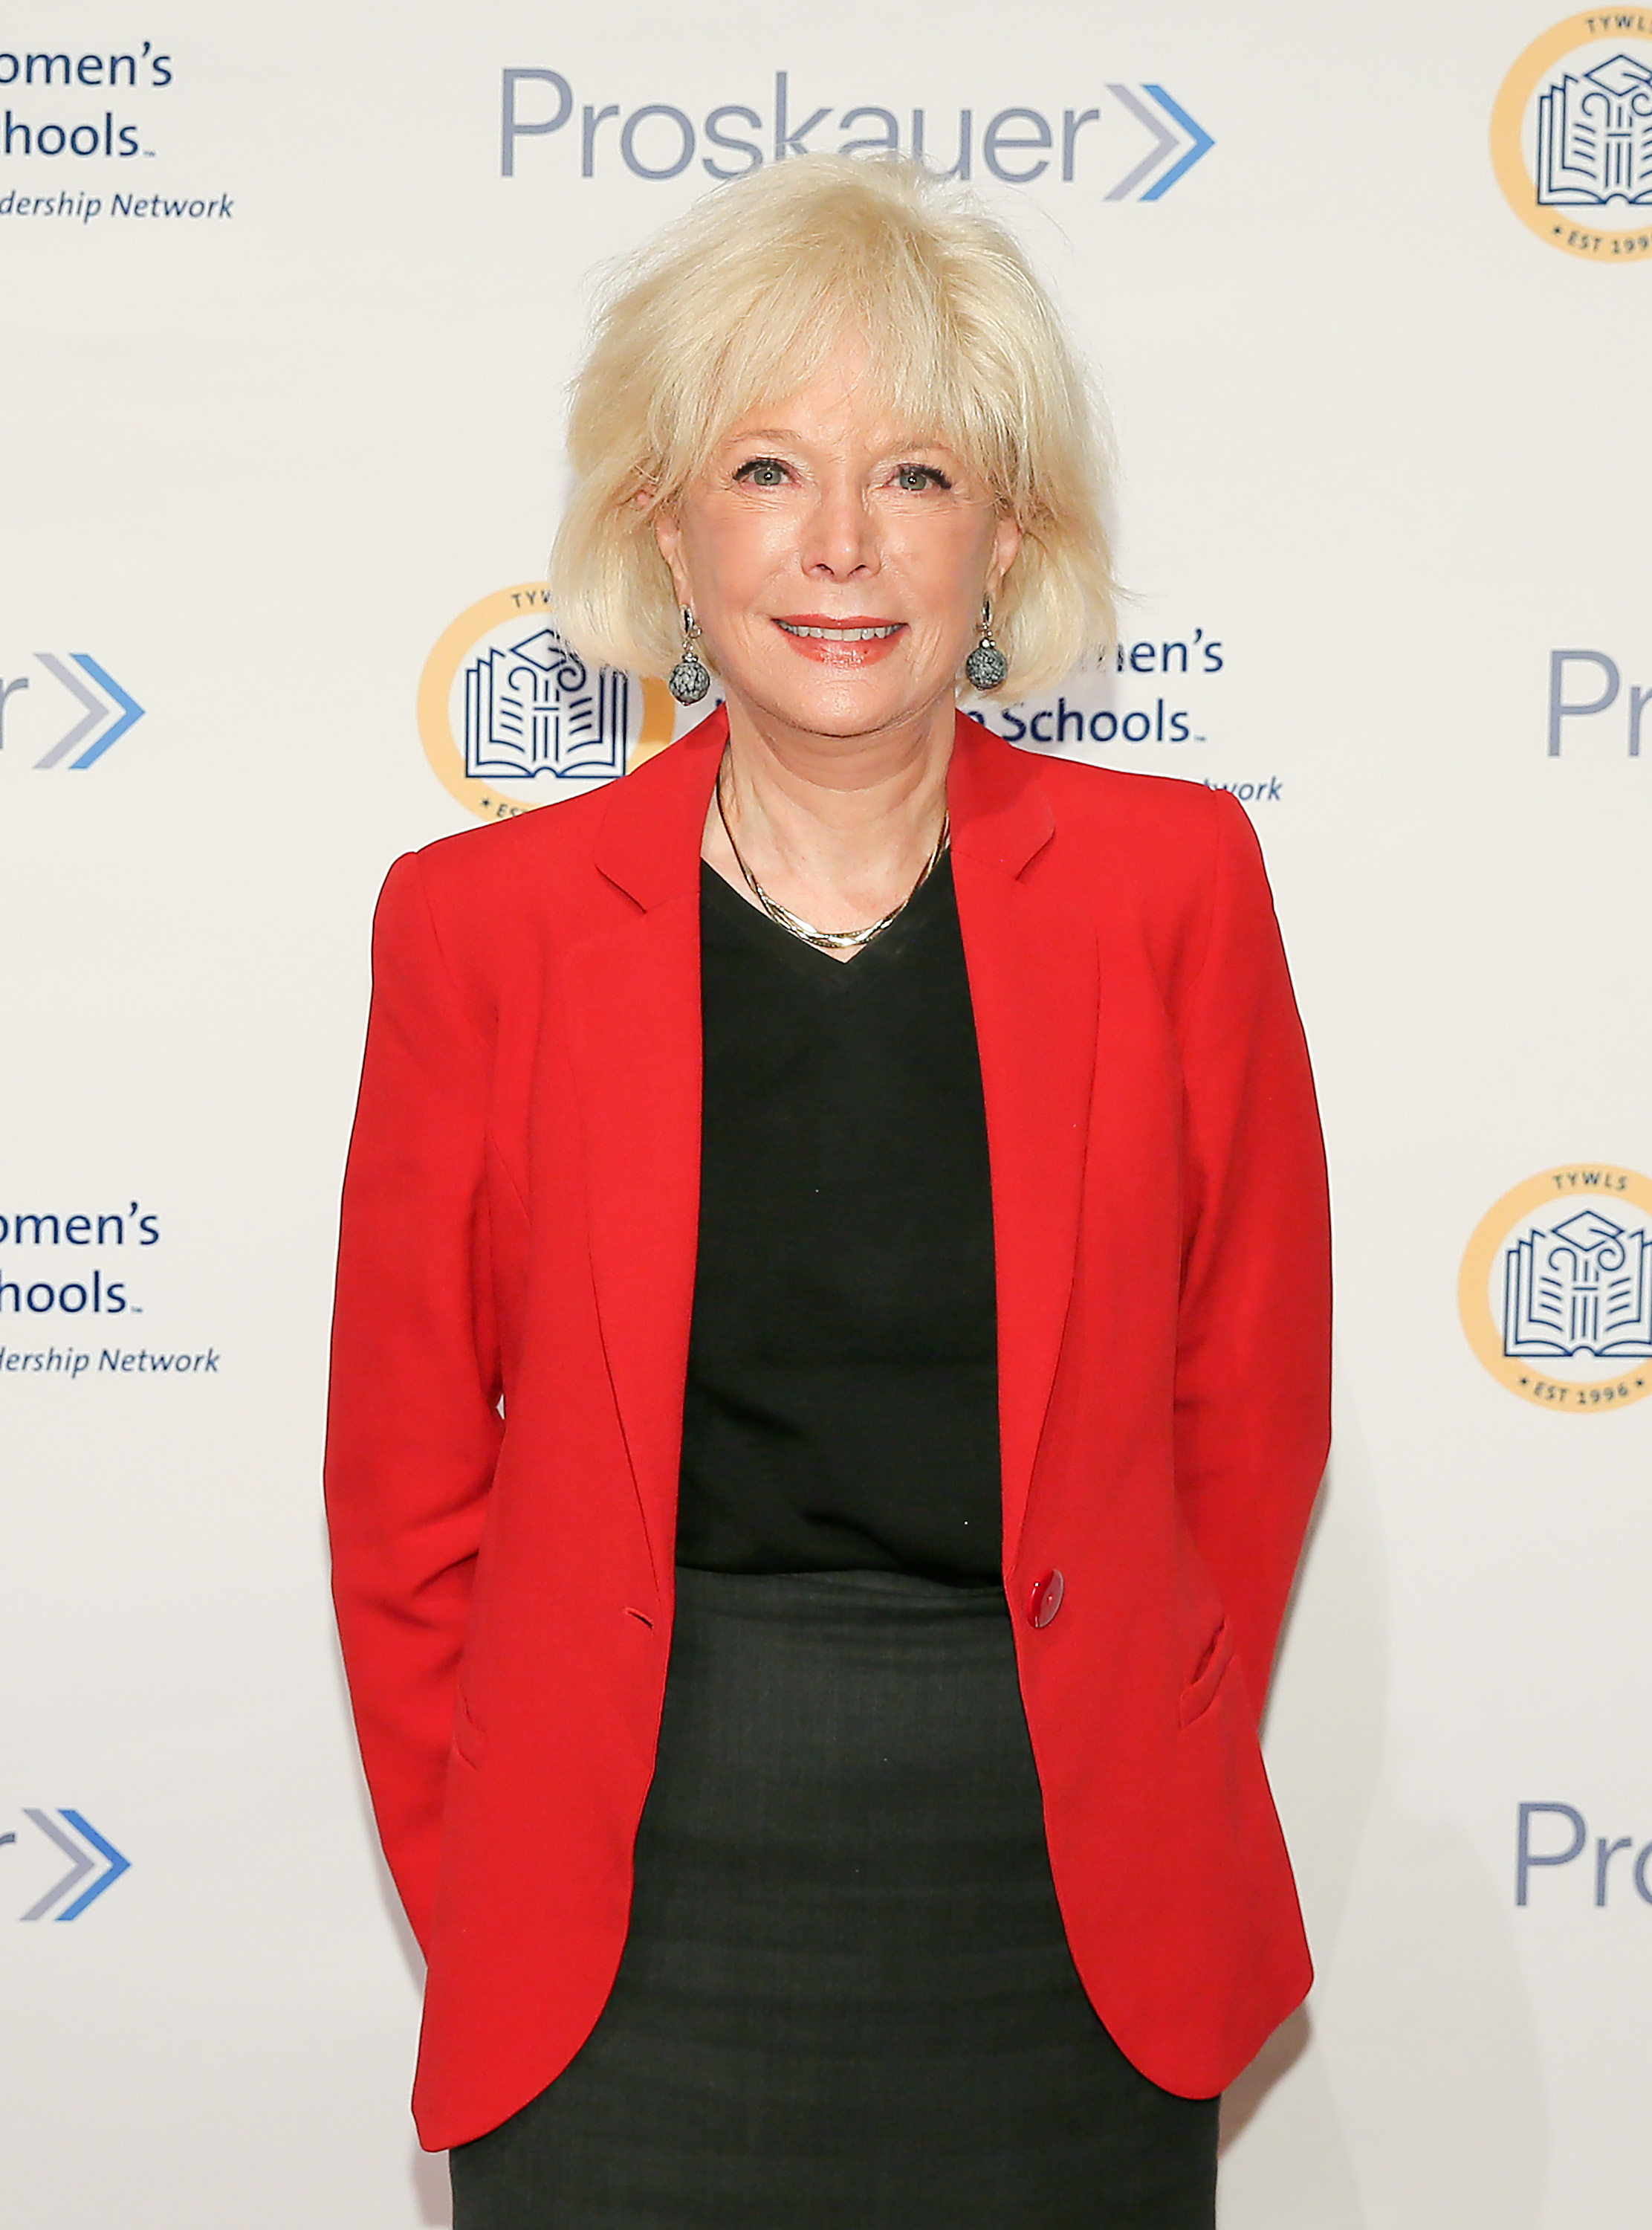 Lesley Stahl attends the 13th Annual (Em)Power Breakfast in 2019 in New York City.